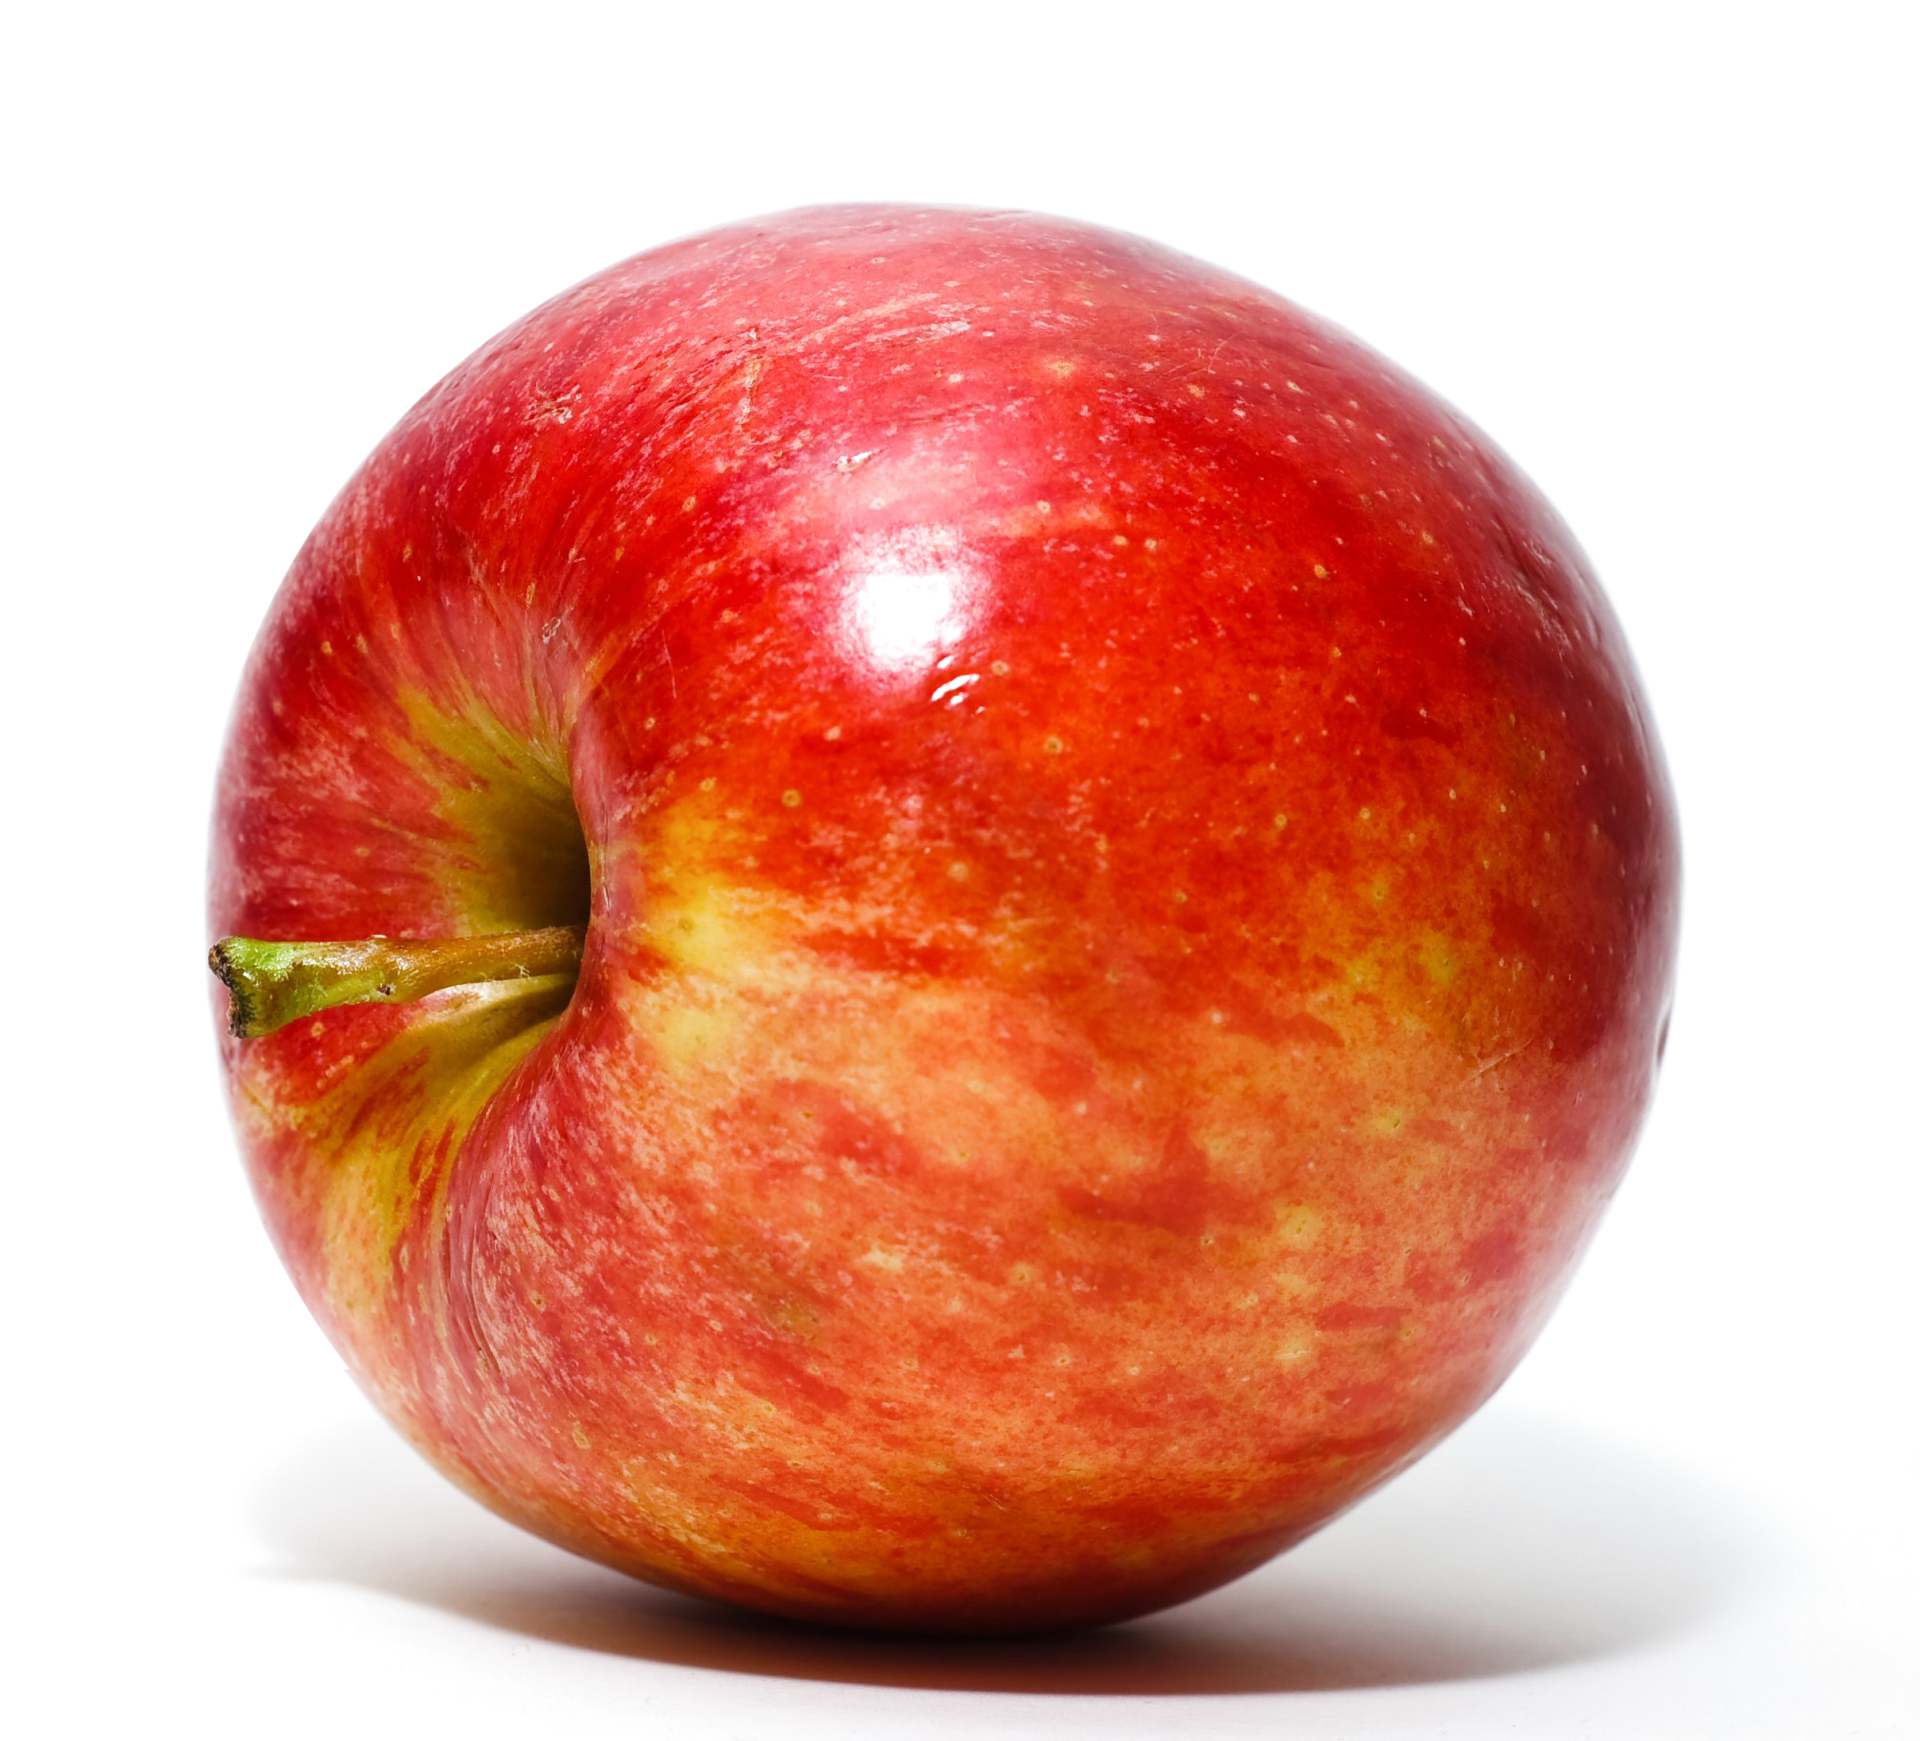 Apple Png- Vector, PSD, and Clipart With Transparent🍎